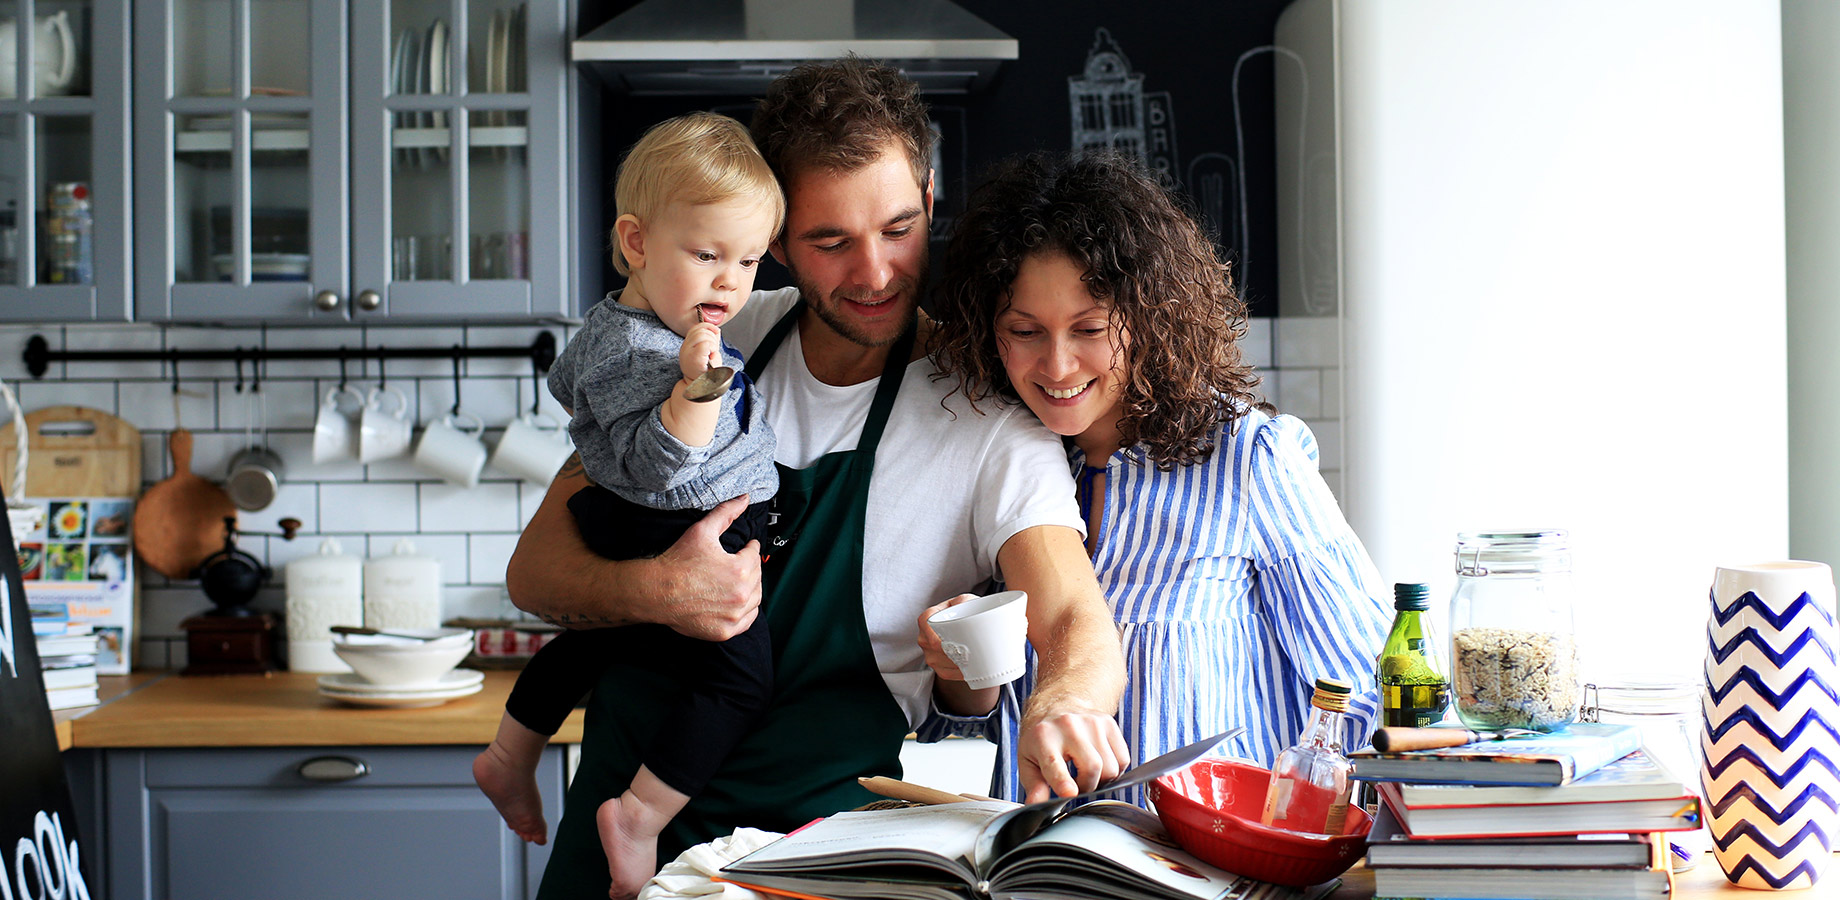 Family cooking in the home to demonstrate the Home & Furniture industry